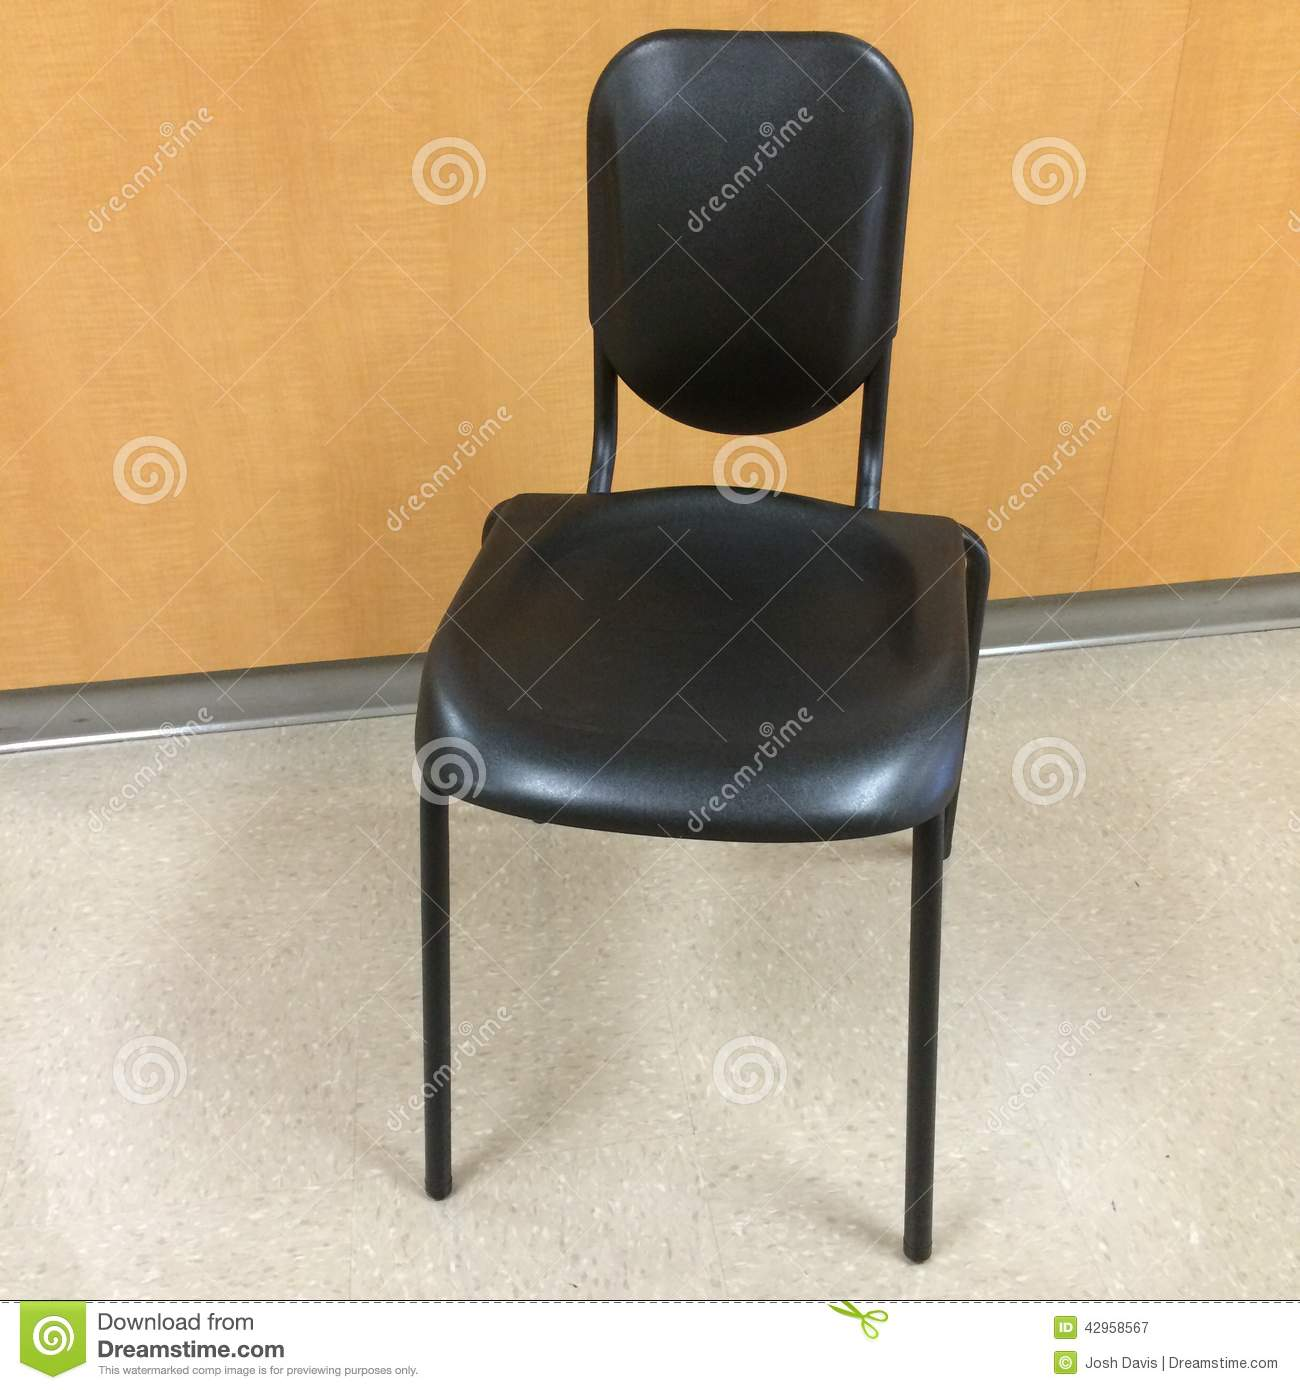 Posture chair used in band or orchestra stock photo image 42958567